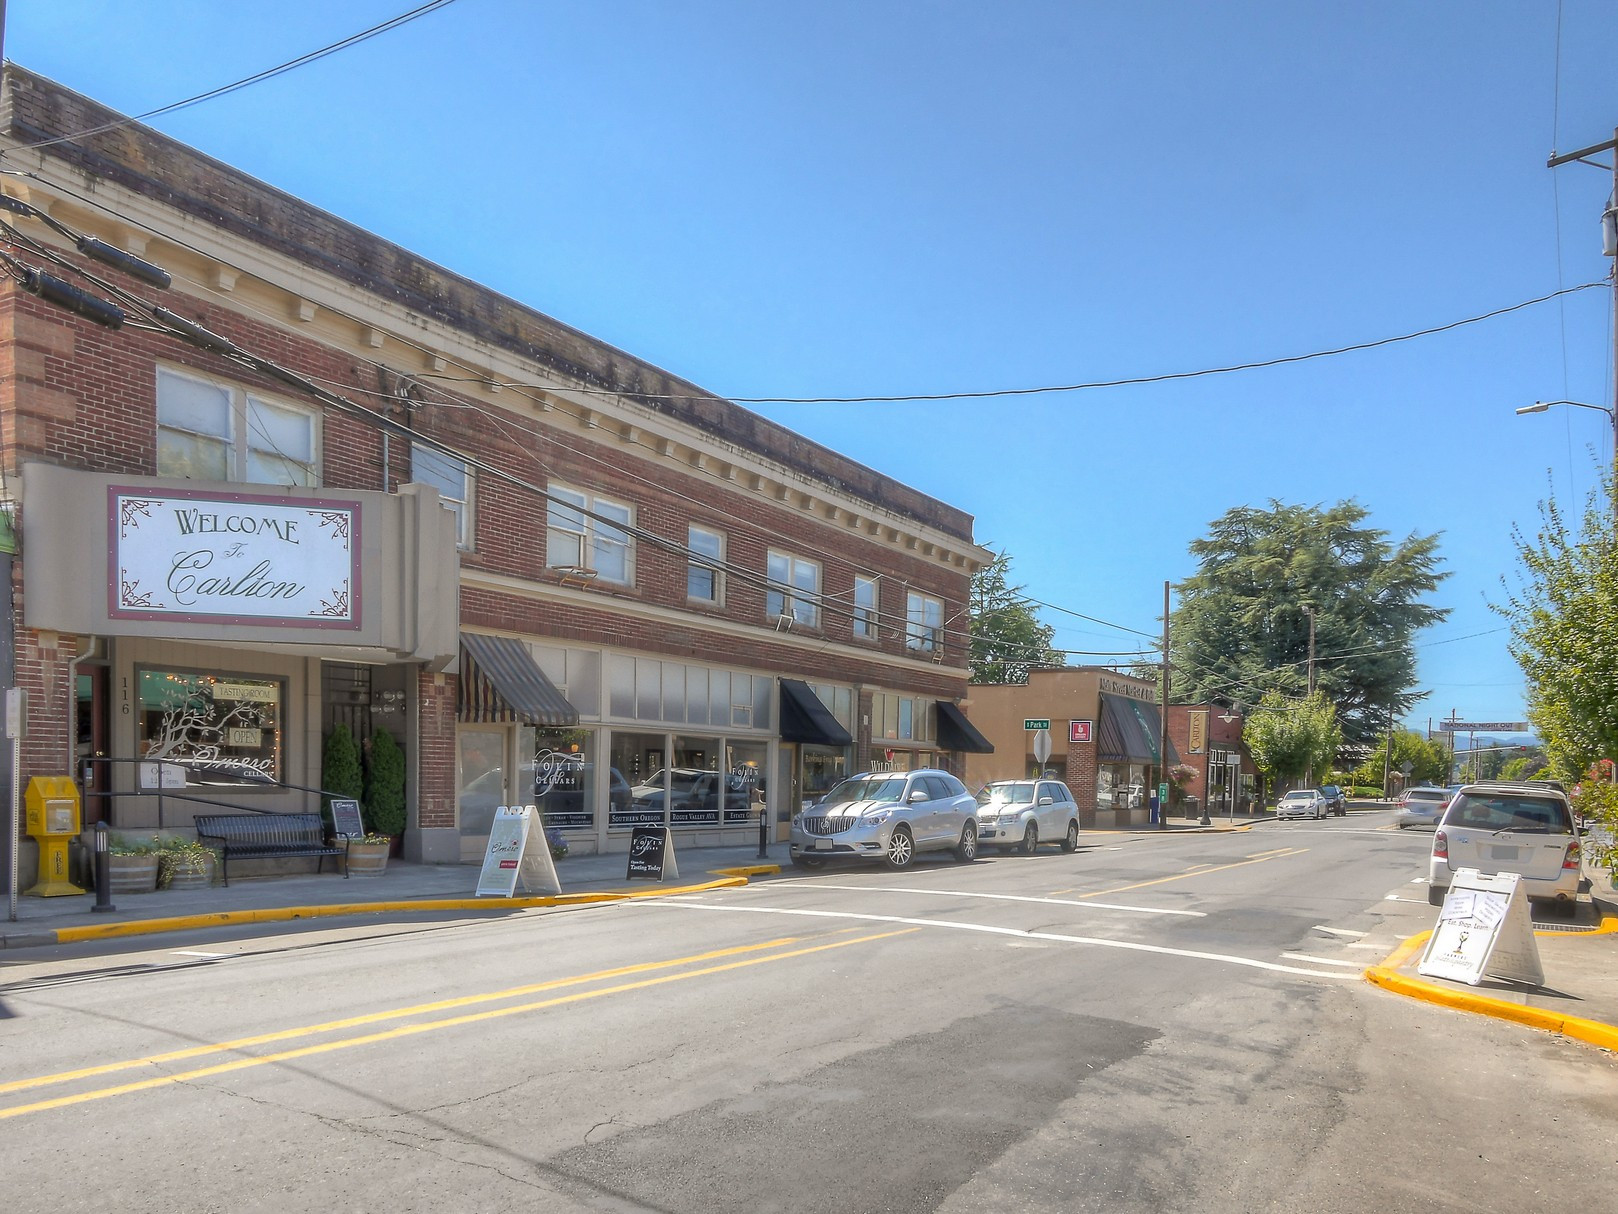 9-welcome-to-carlton-oregon-downtown-the-kelly-group-real-estate